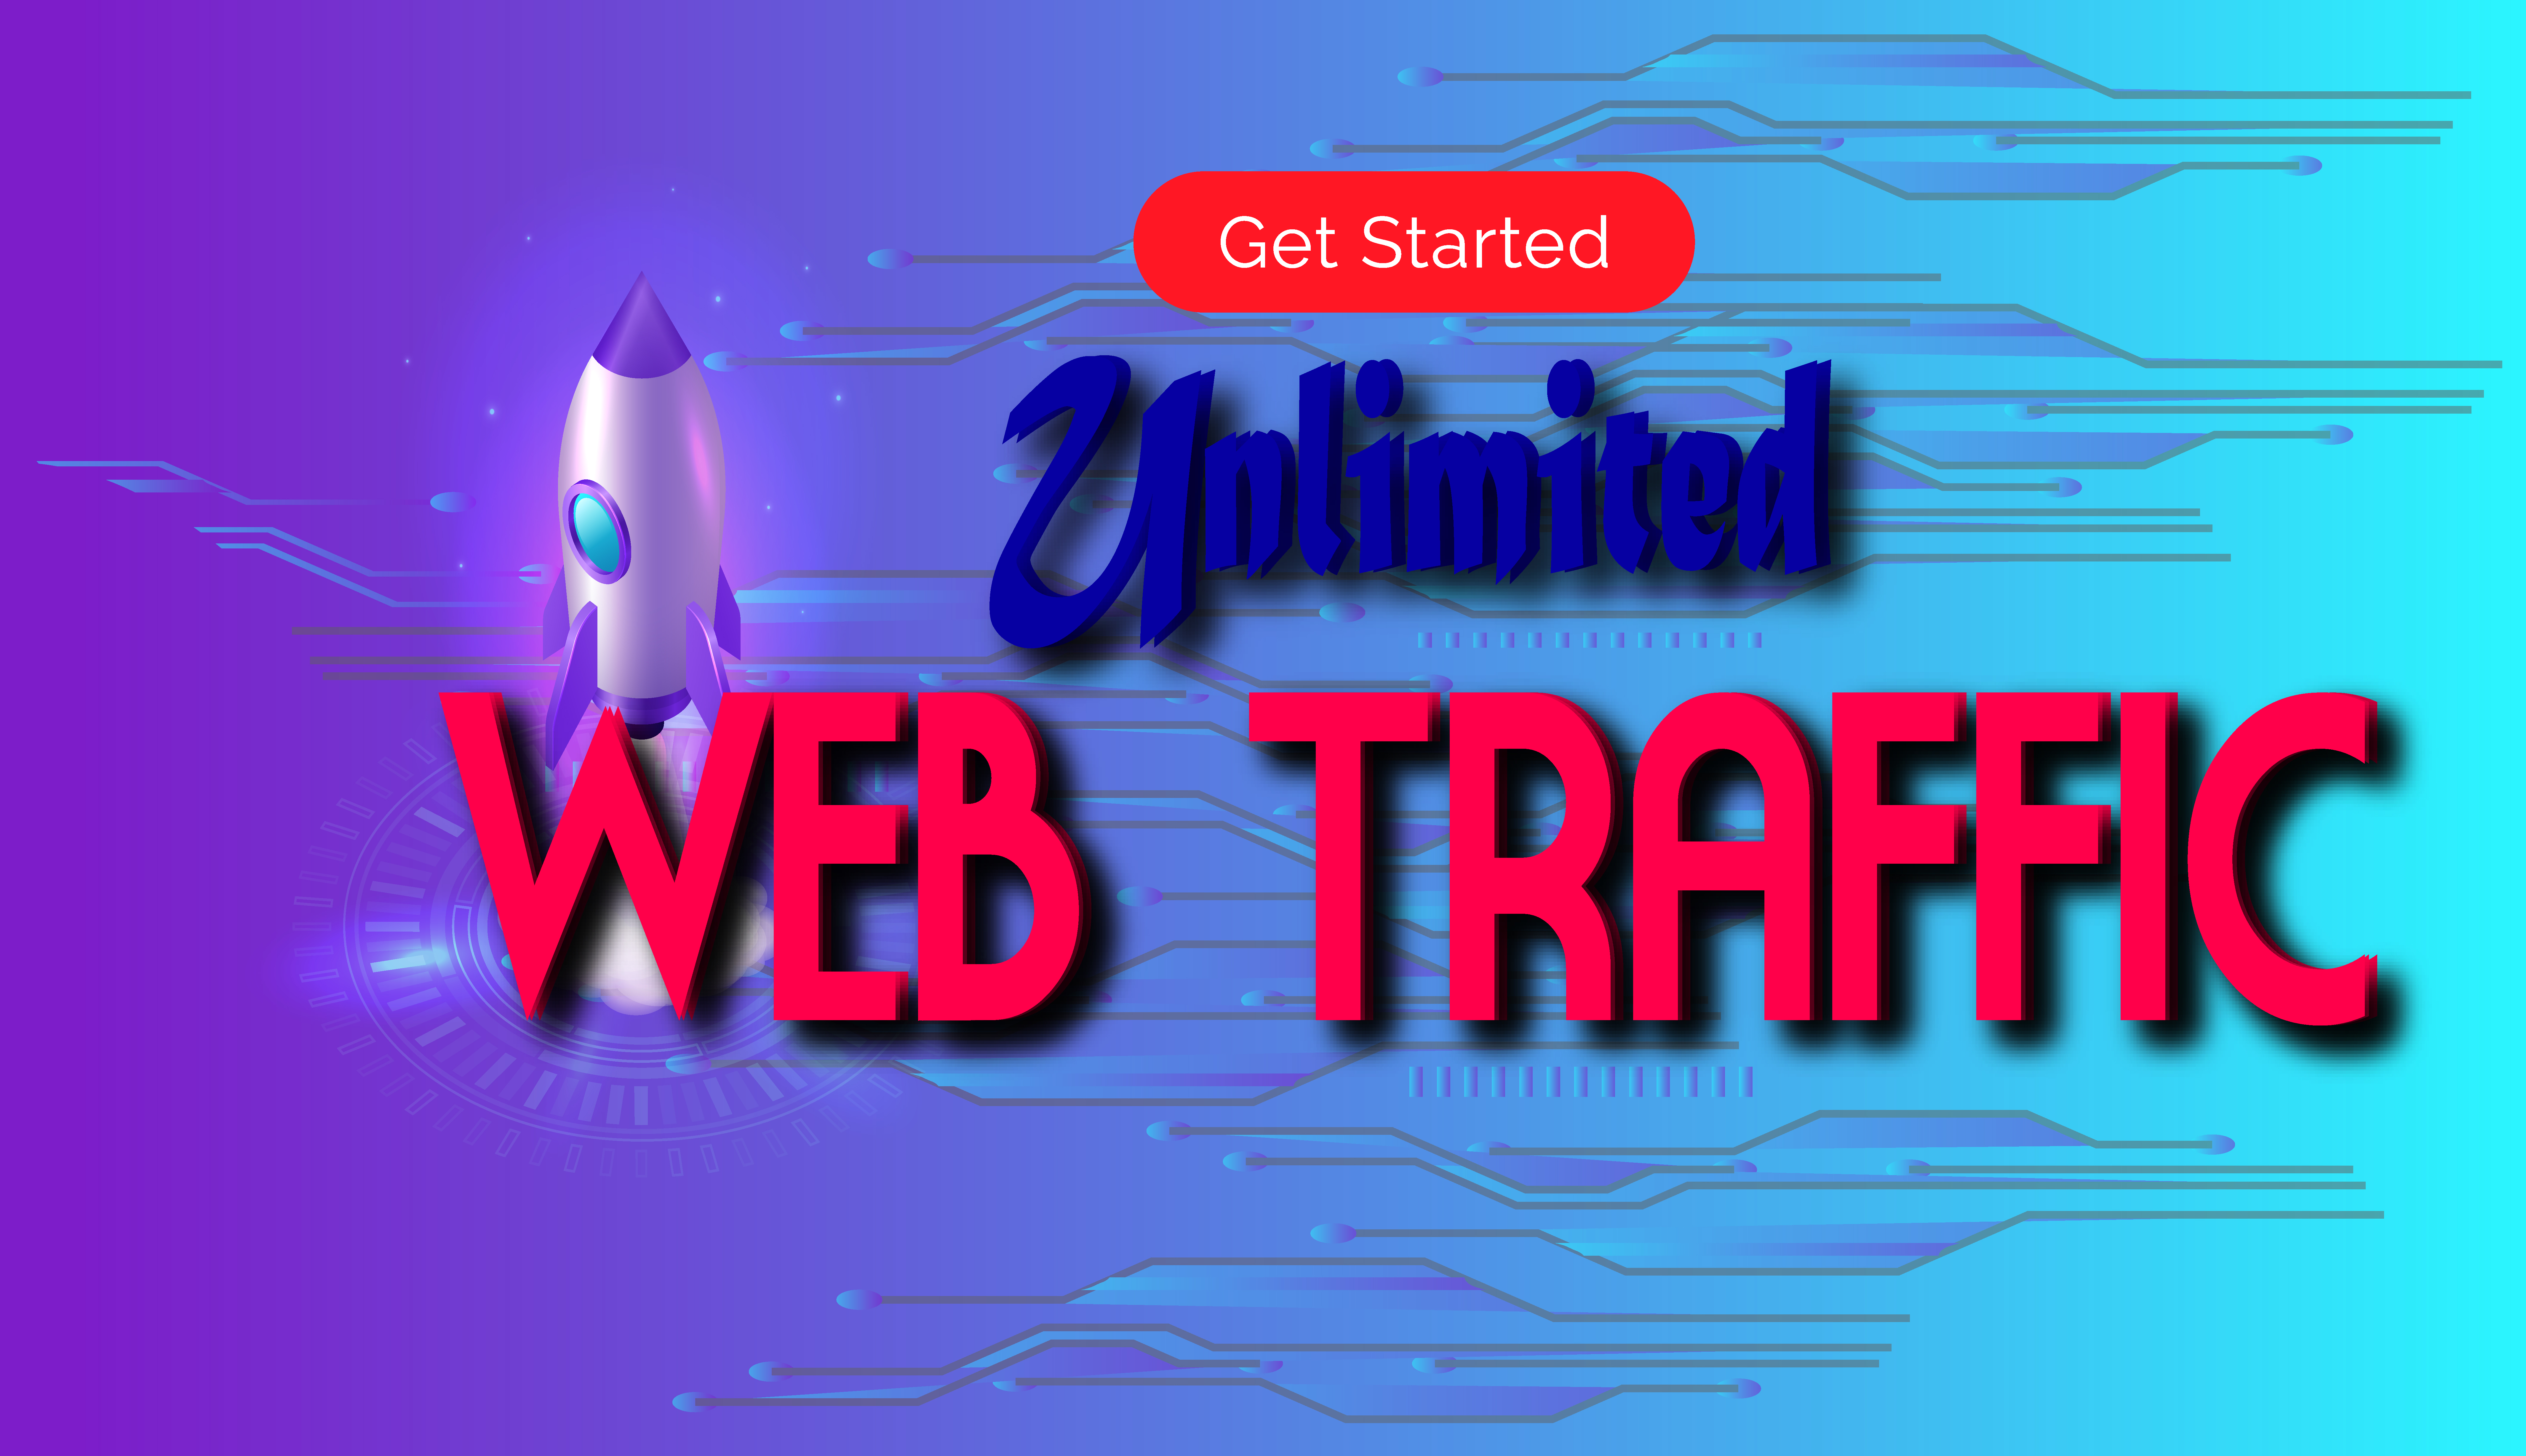 I will drive unlimited genuine web traffic 15 DAYS